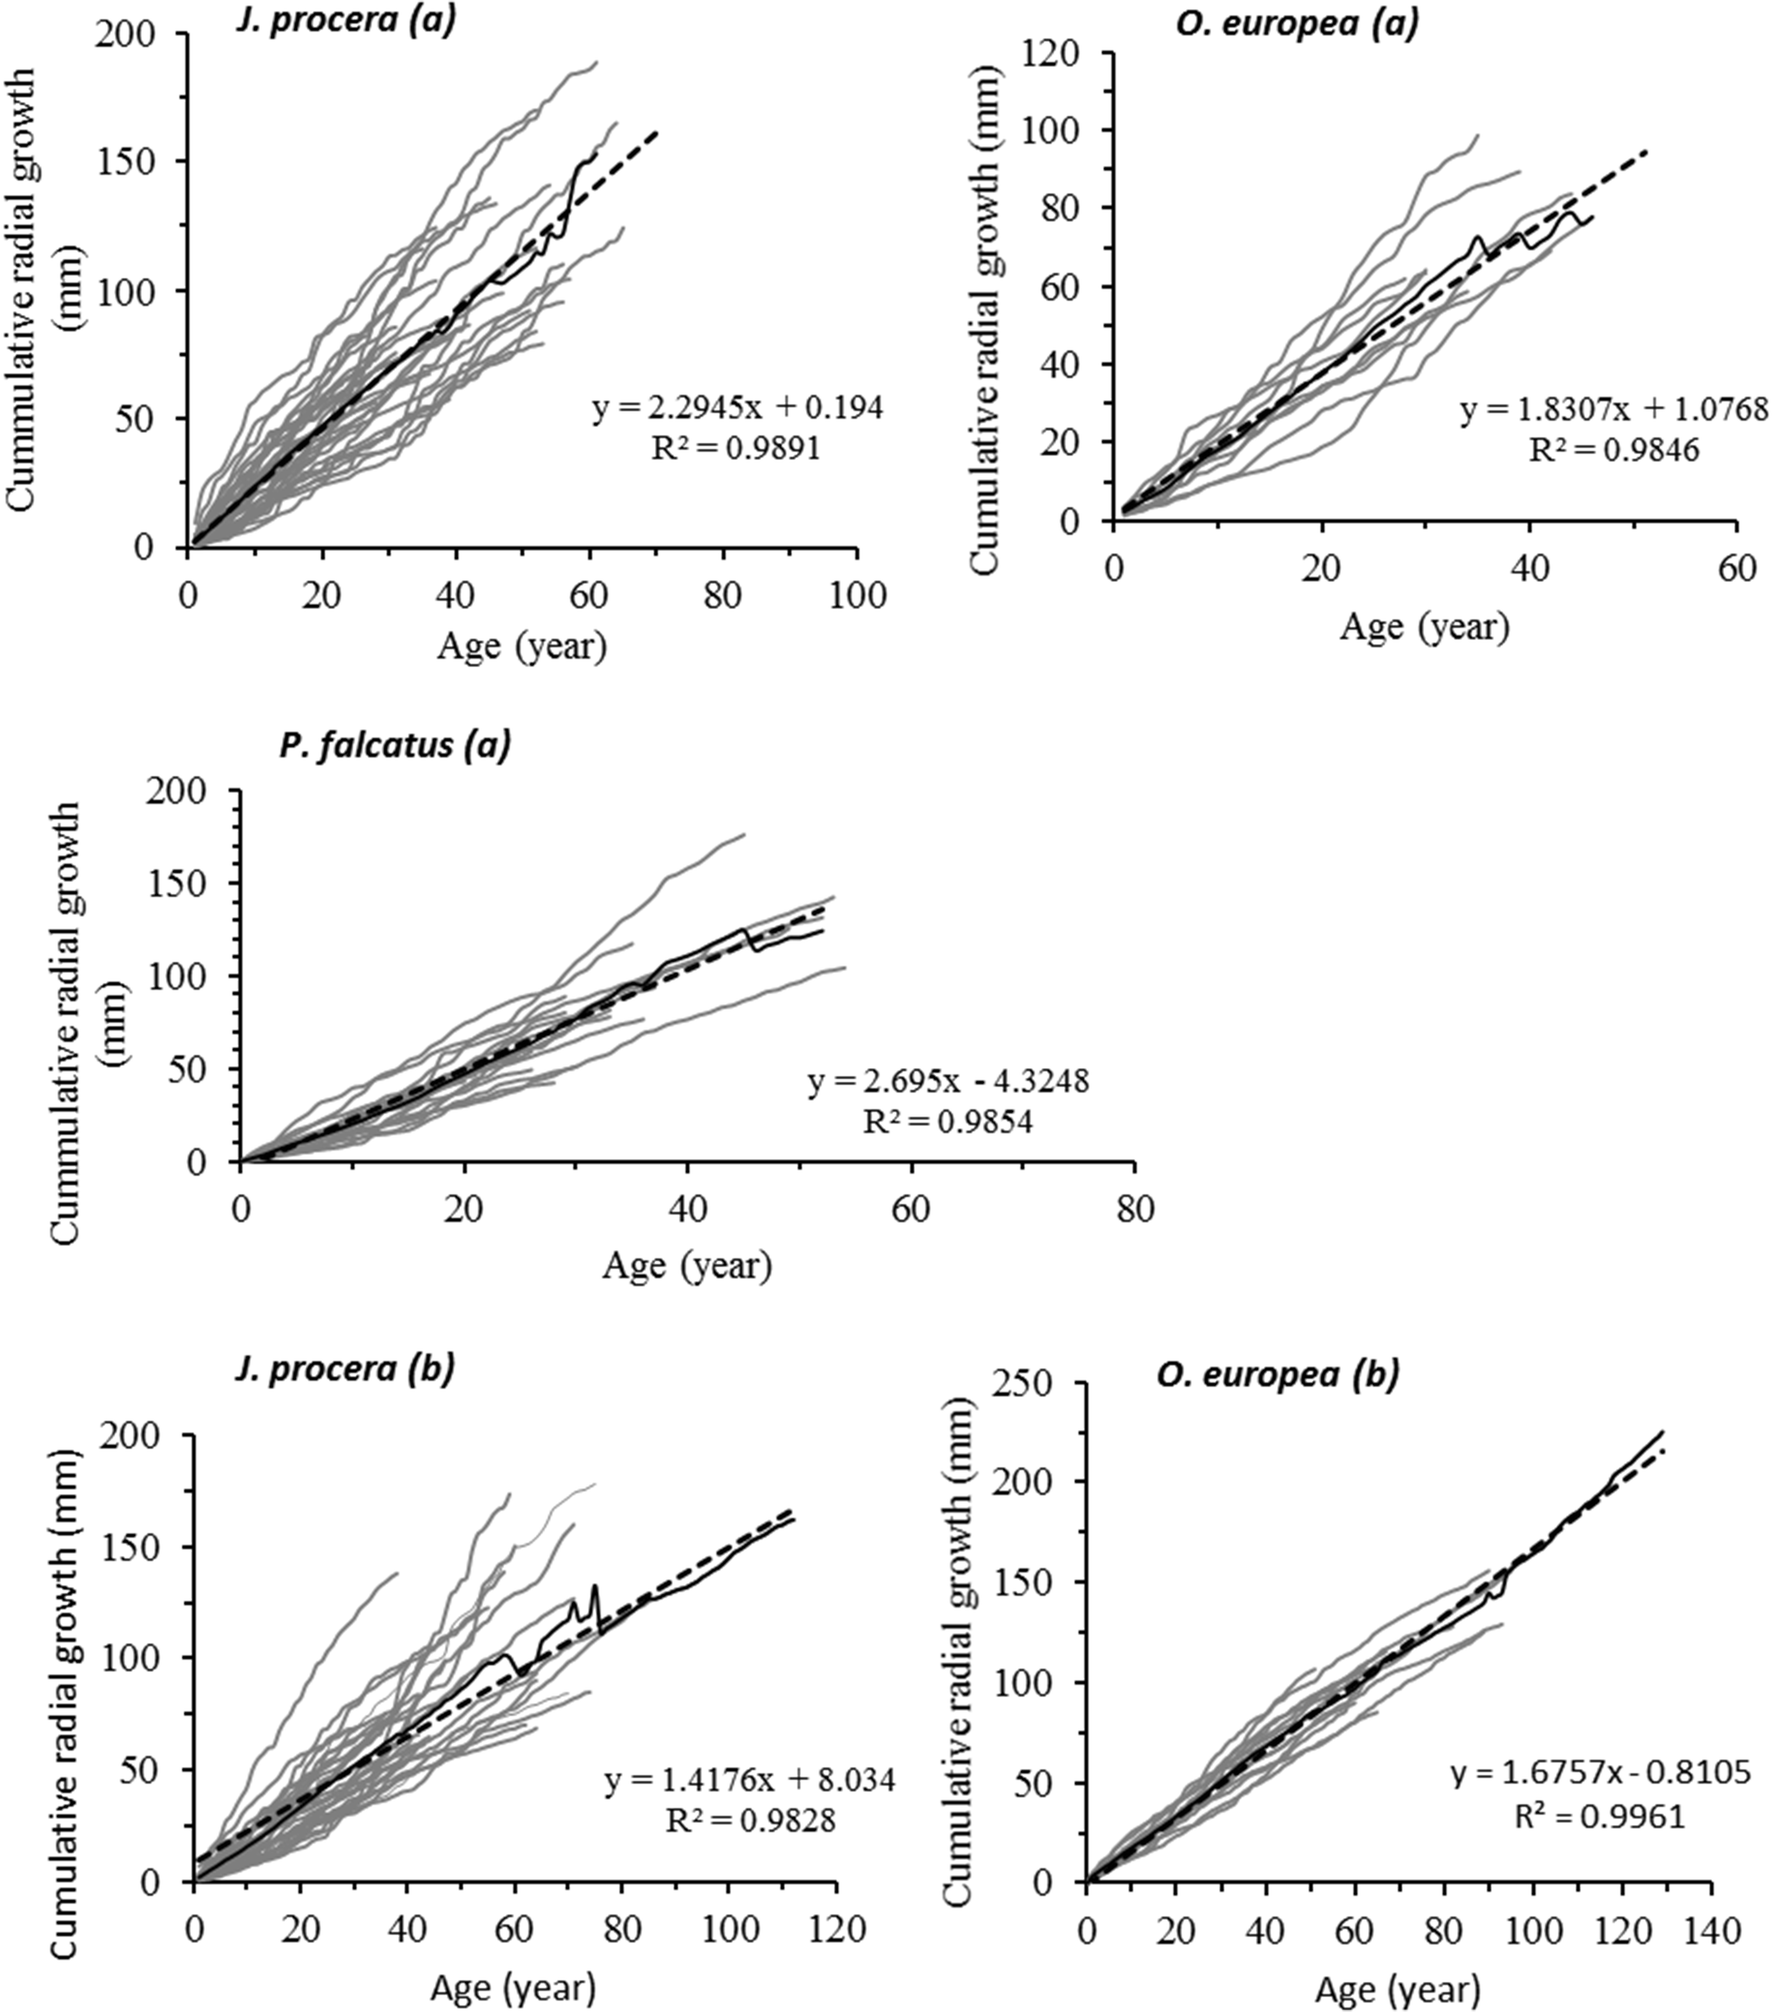 Growth trajectories and ages of main tree species in dry